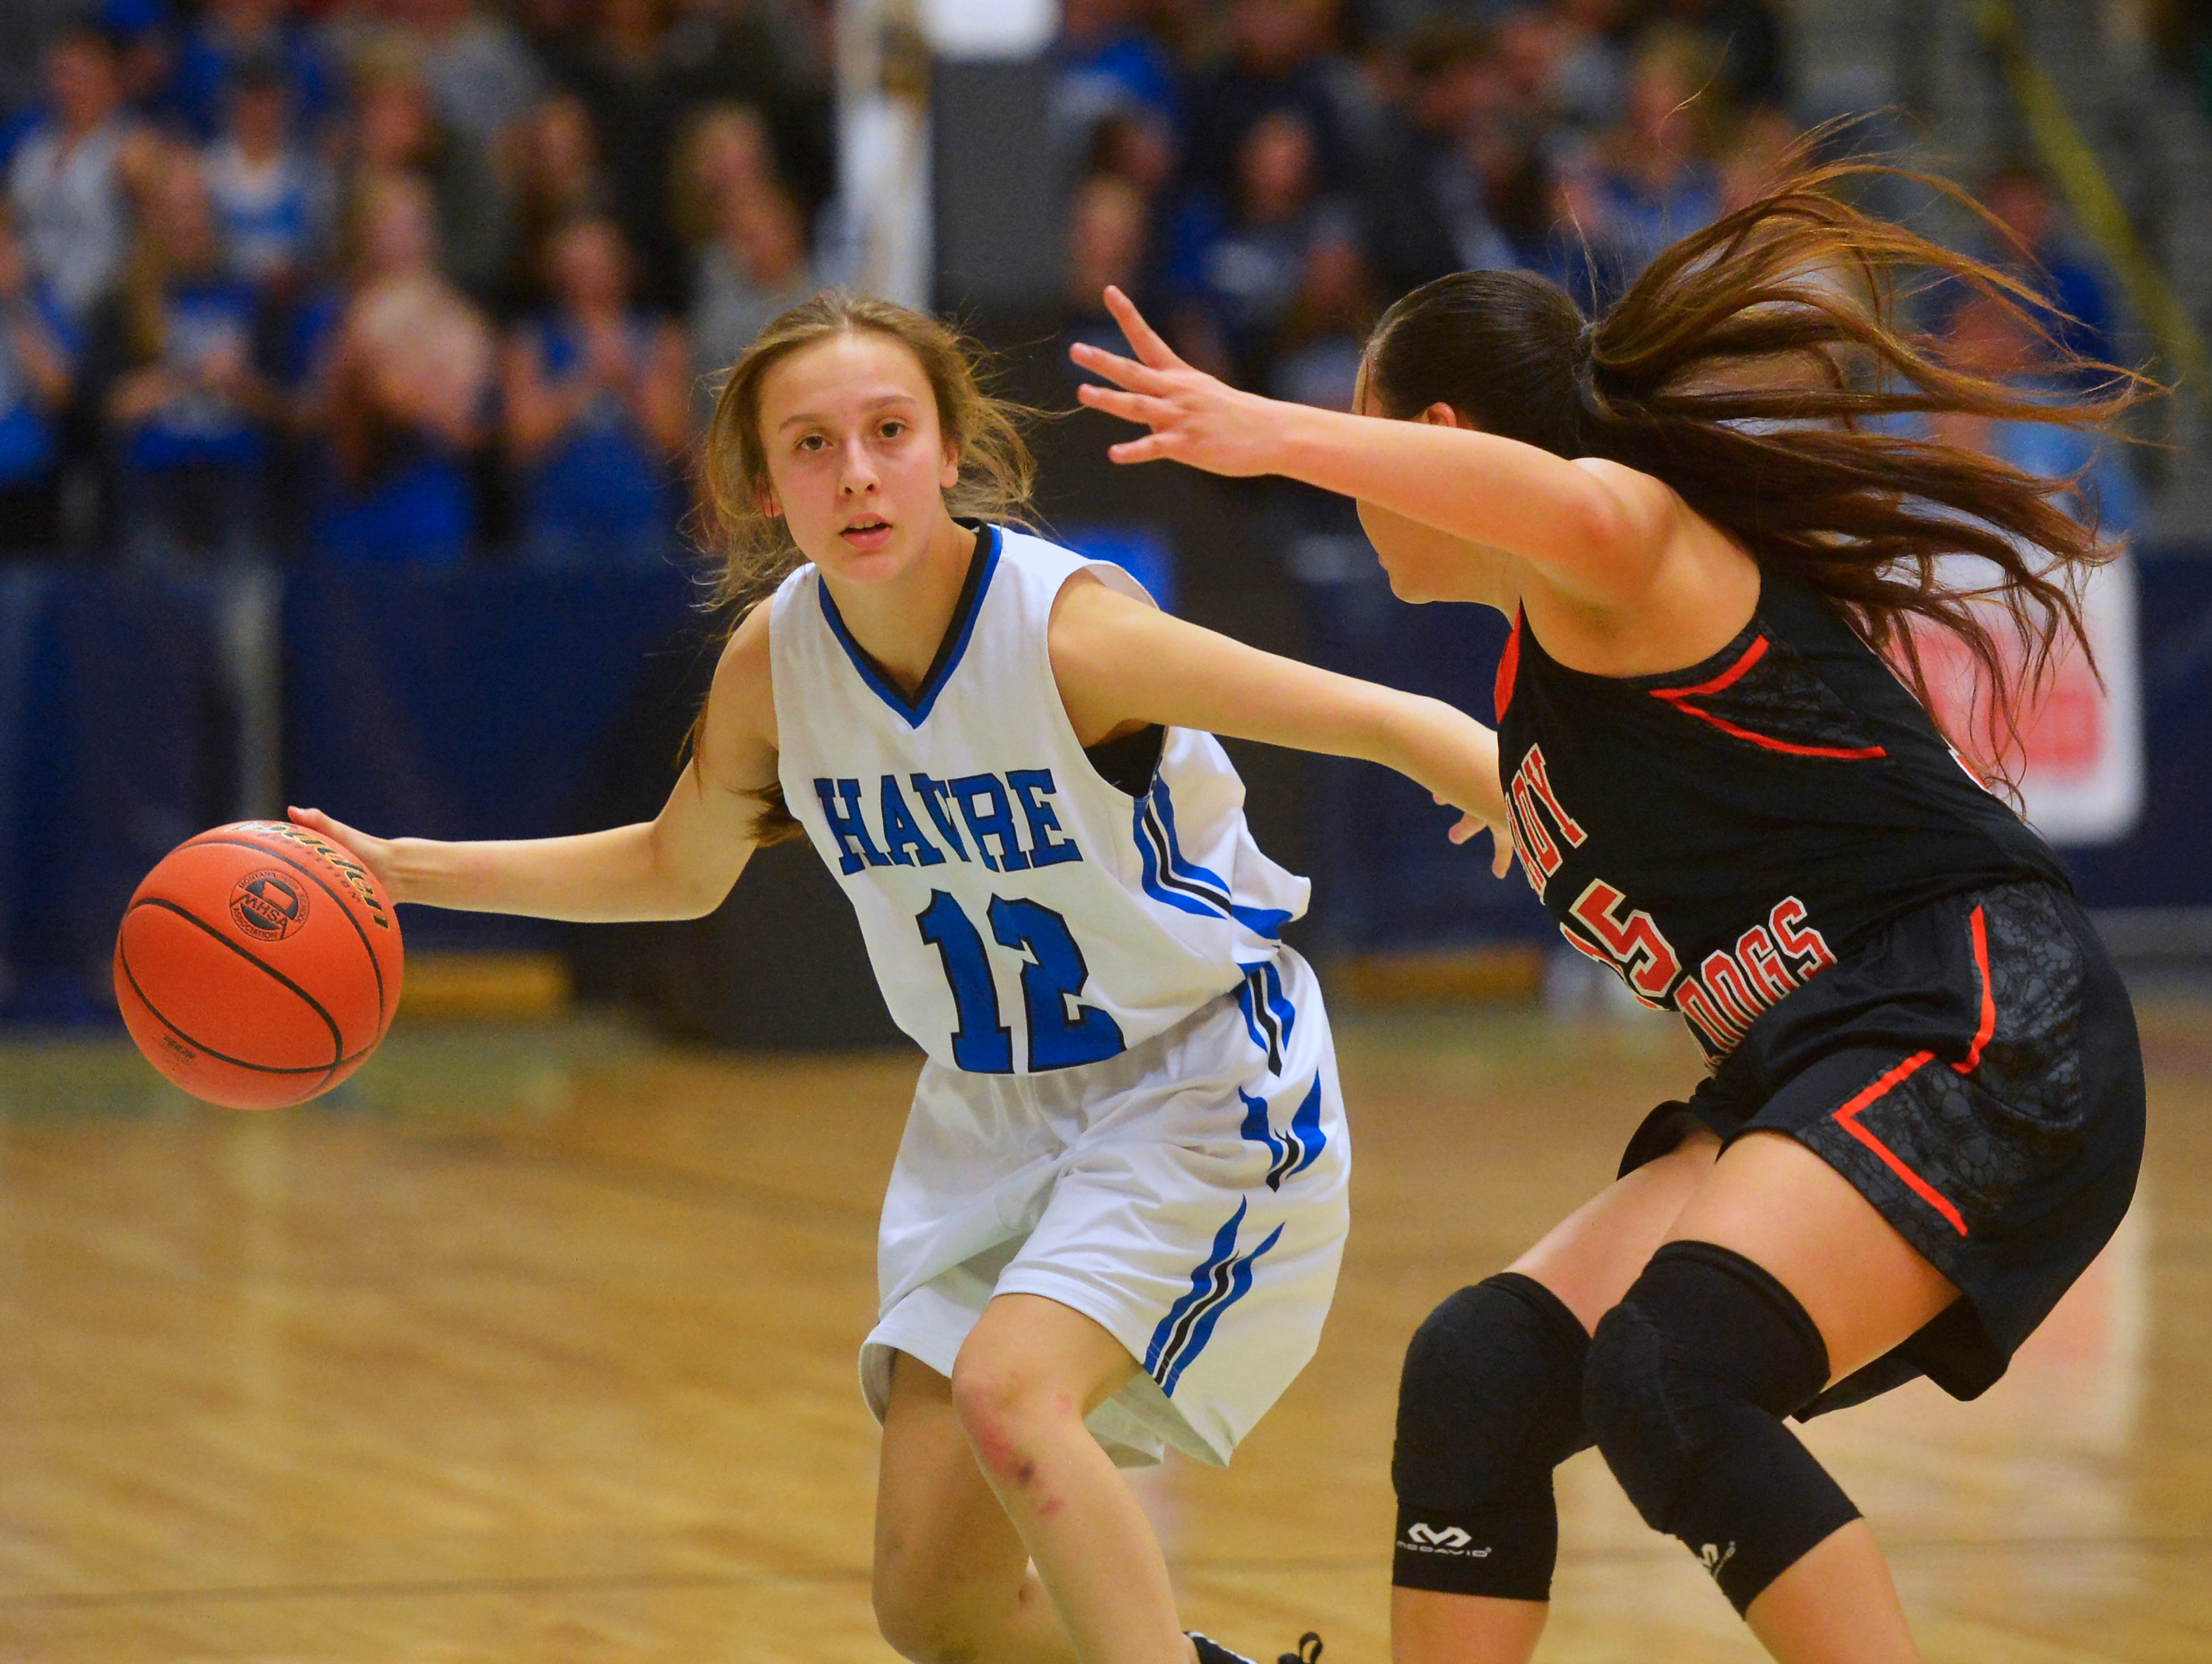 Havre's Kylie Walker handles the ball on offense in the title game of the State Class A Basketball Tournament against Hardin in the Four Seasons Arena, Saturday.